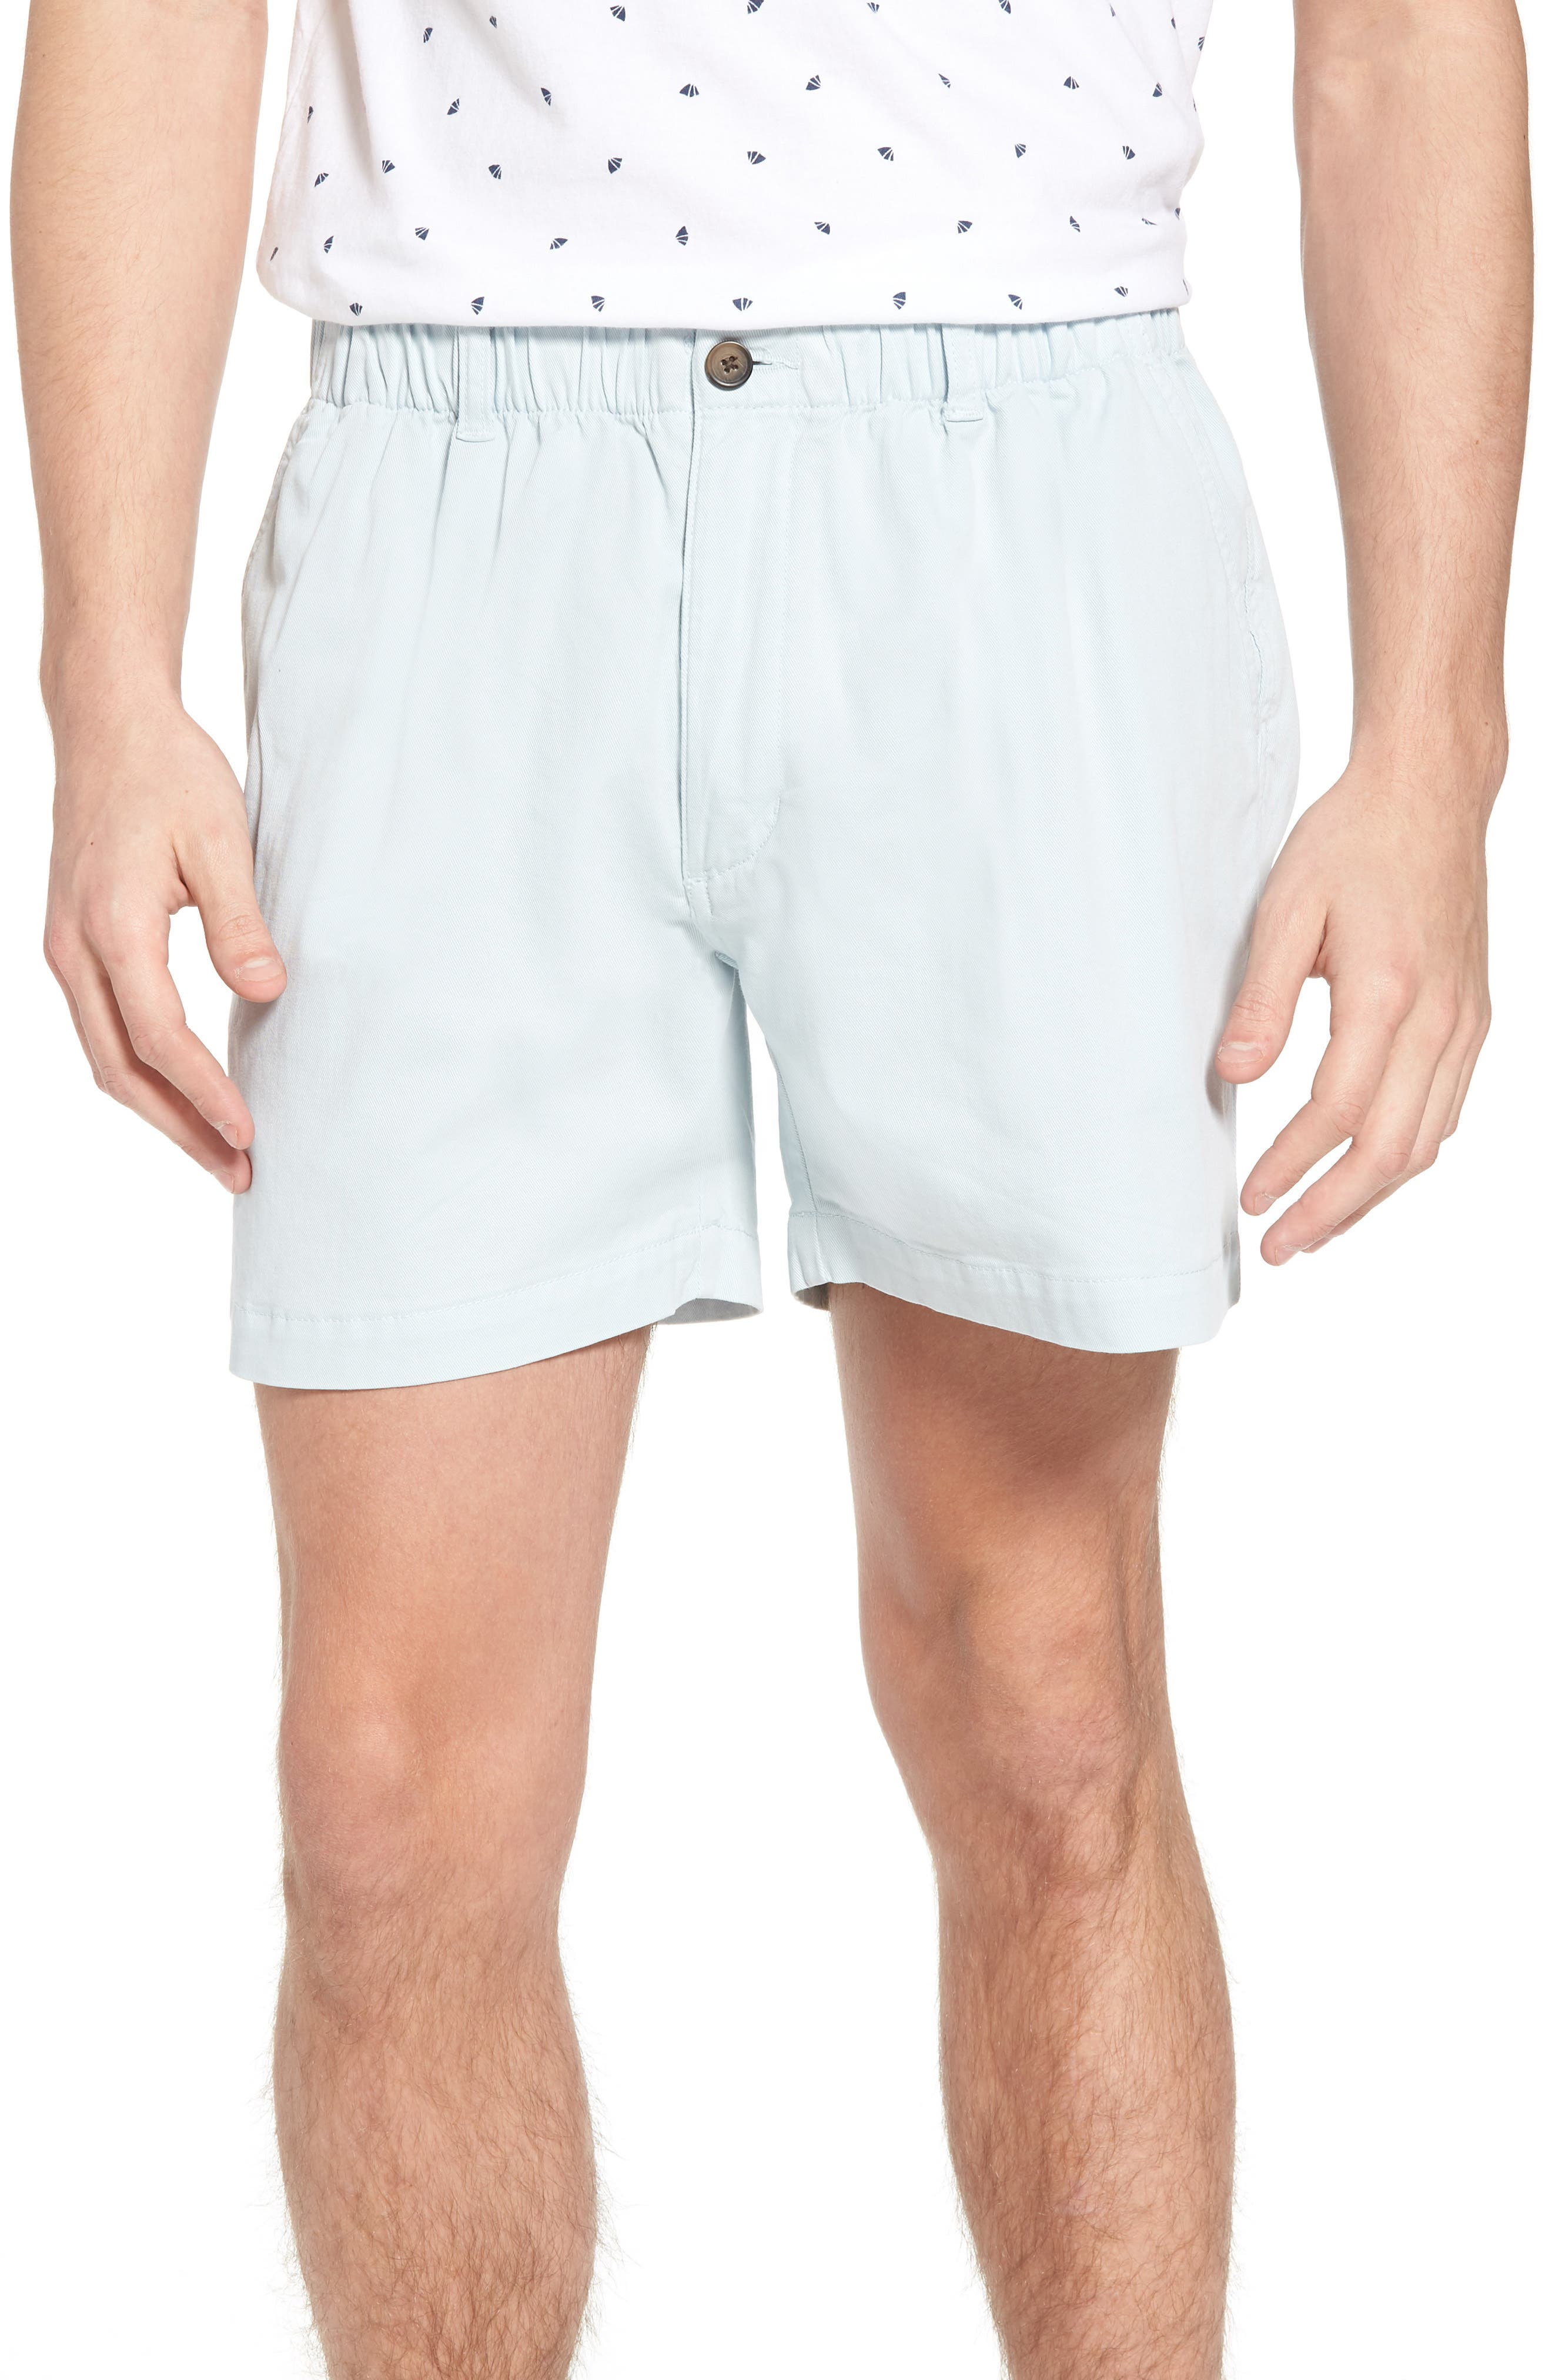 Snappers Elastic Waist 5.5 Inch Stretch Shorts,                         Main,                         color, Sky